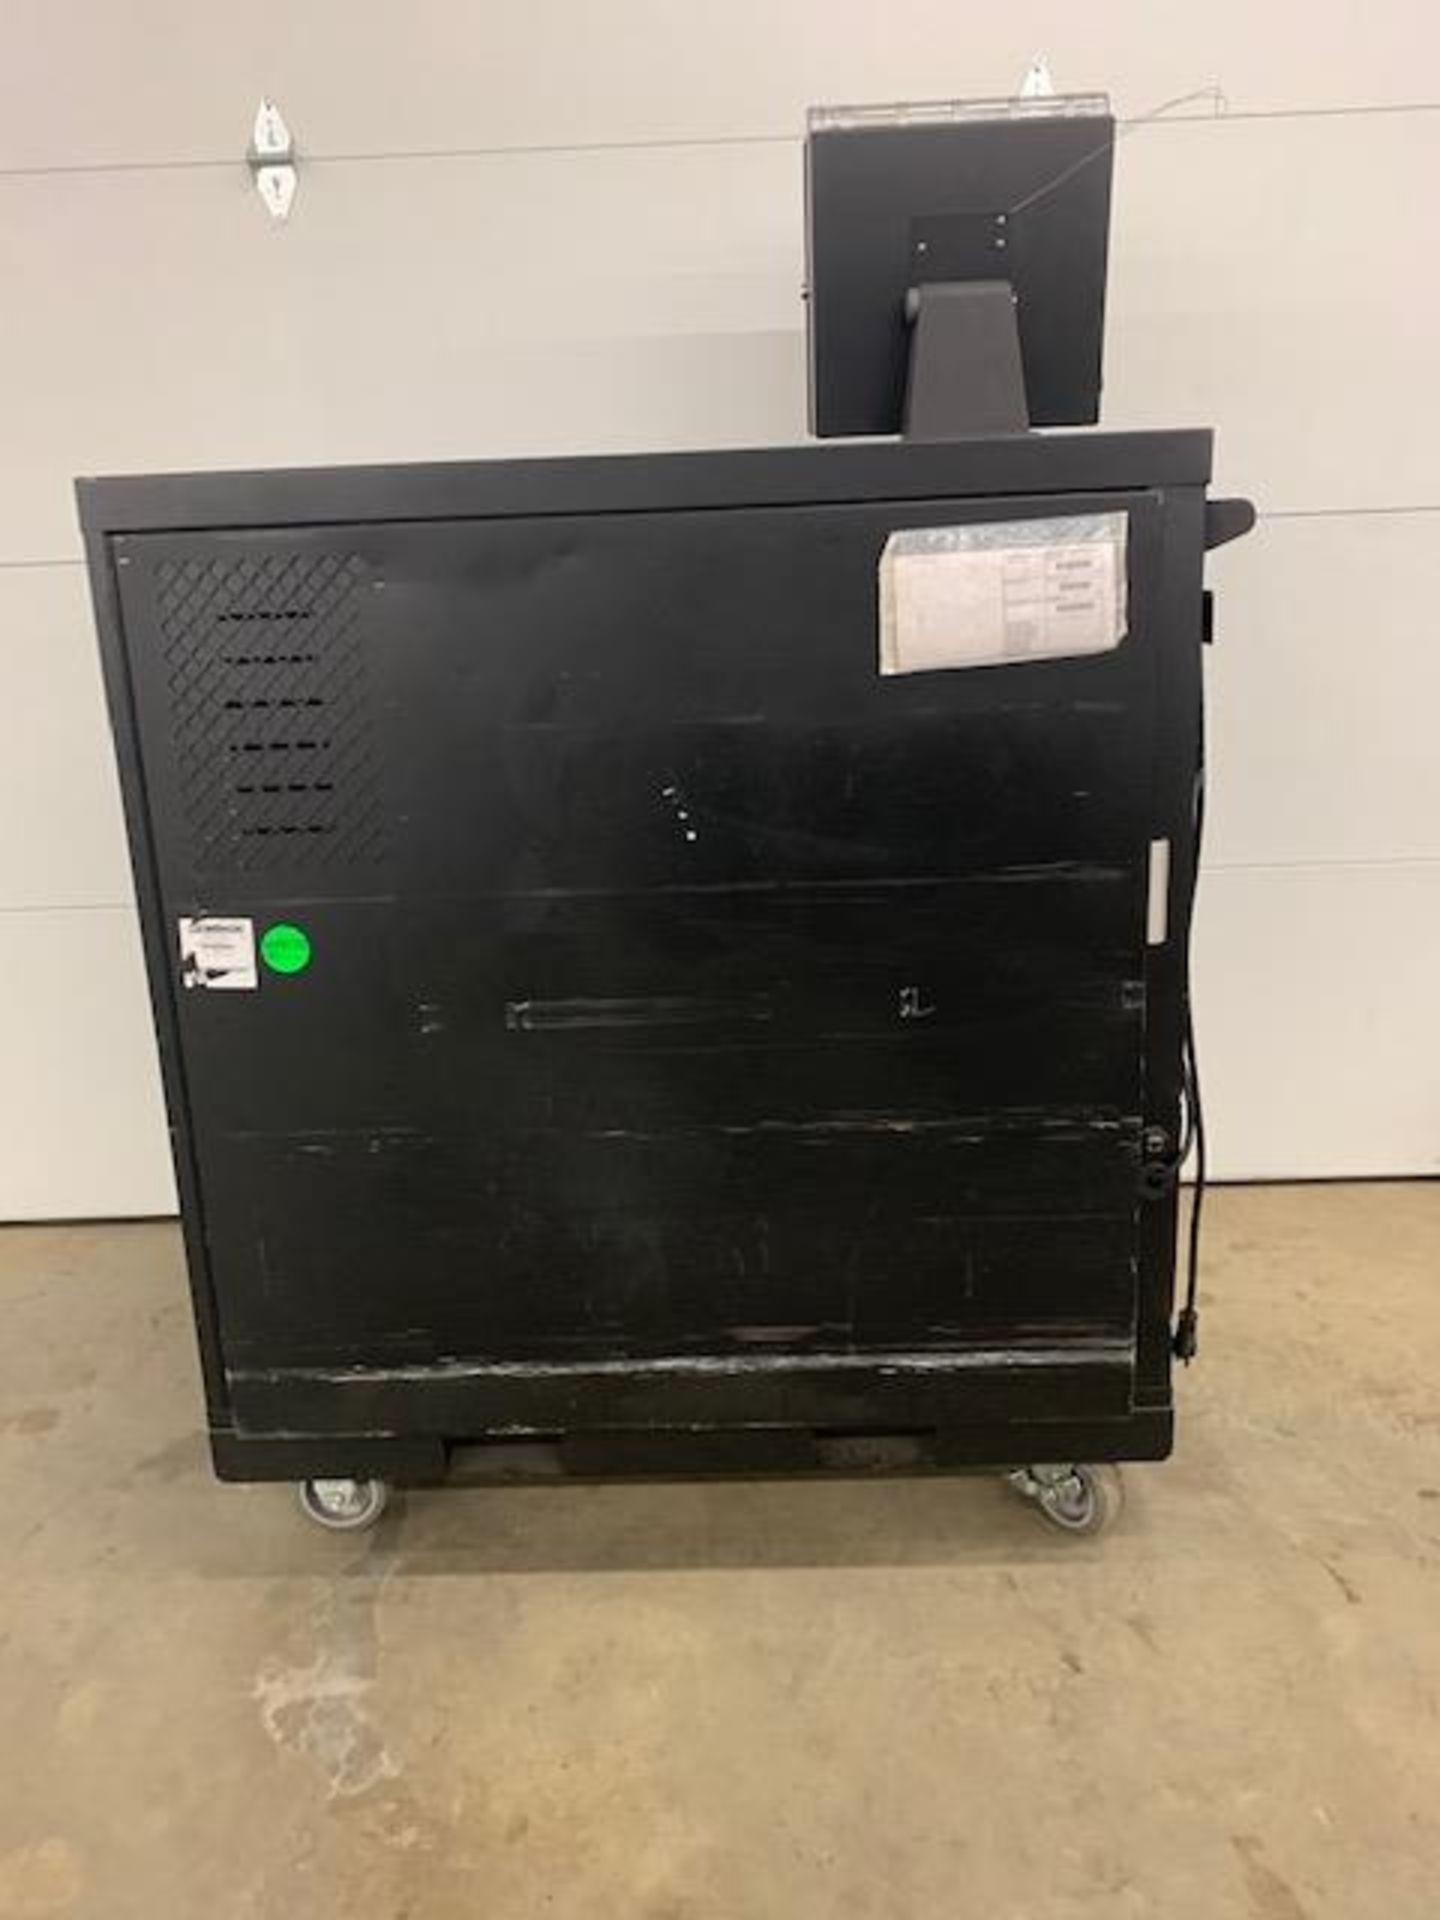 Cribmaster AccuDrawer - Image 12 of 13